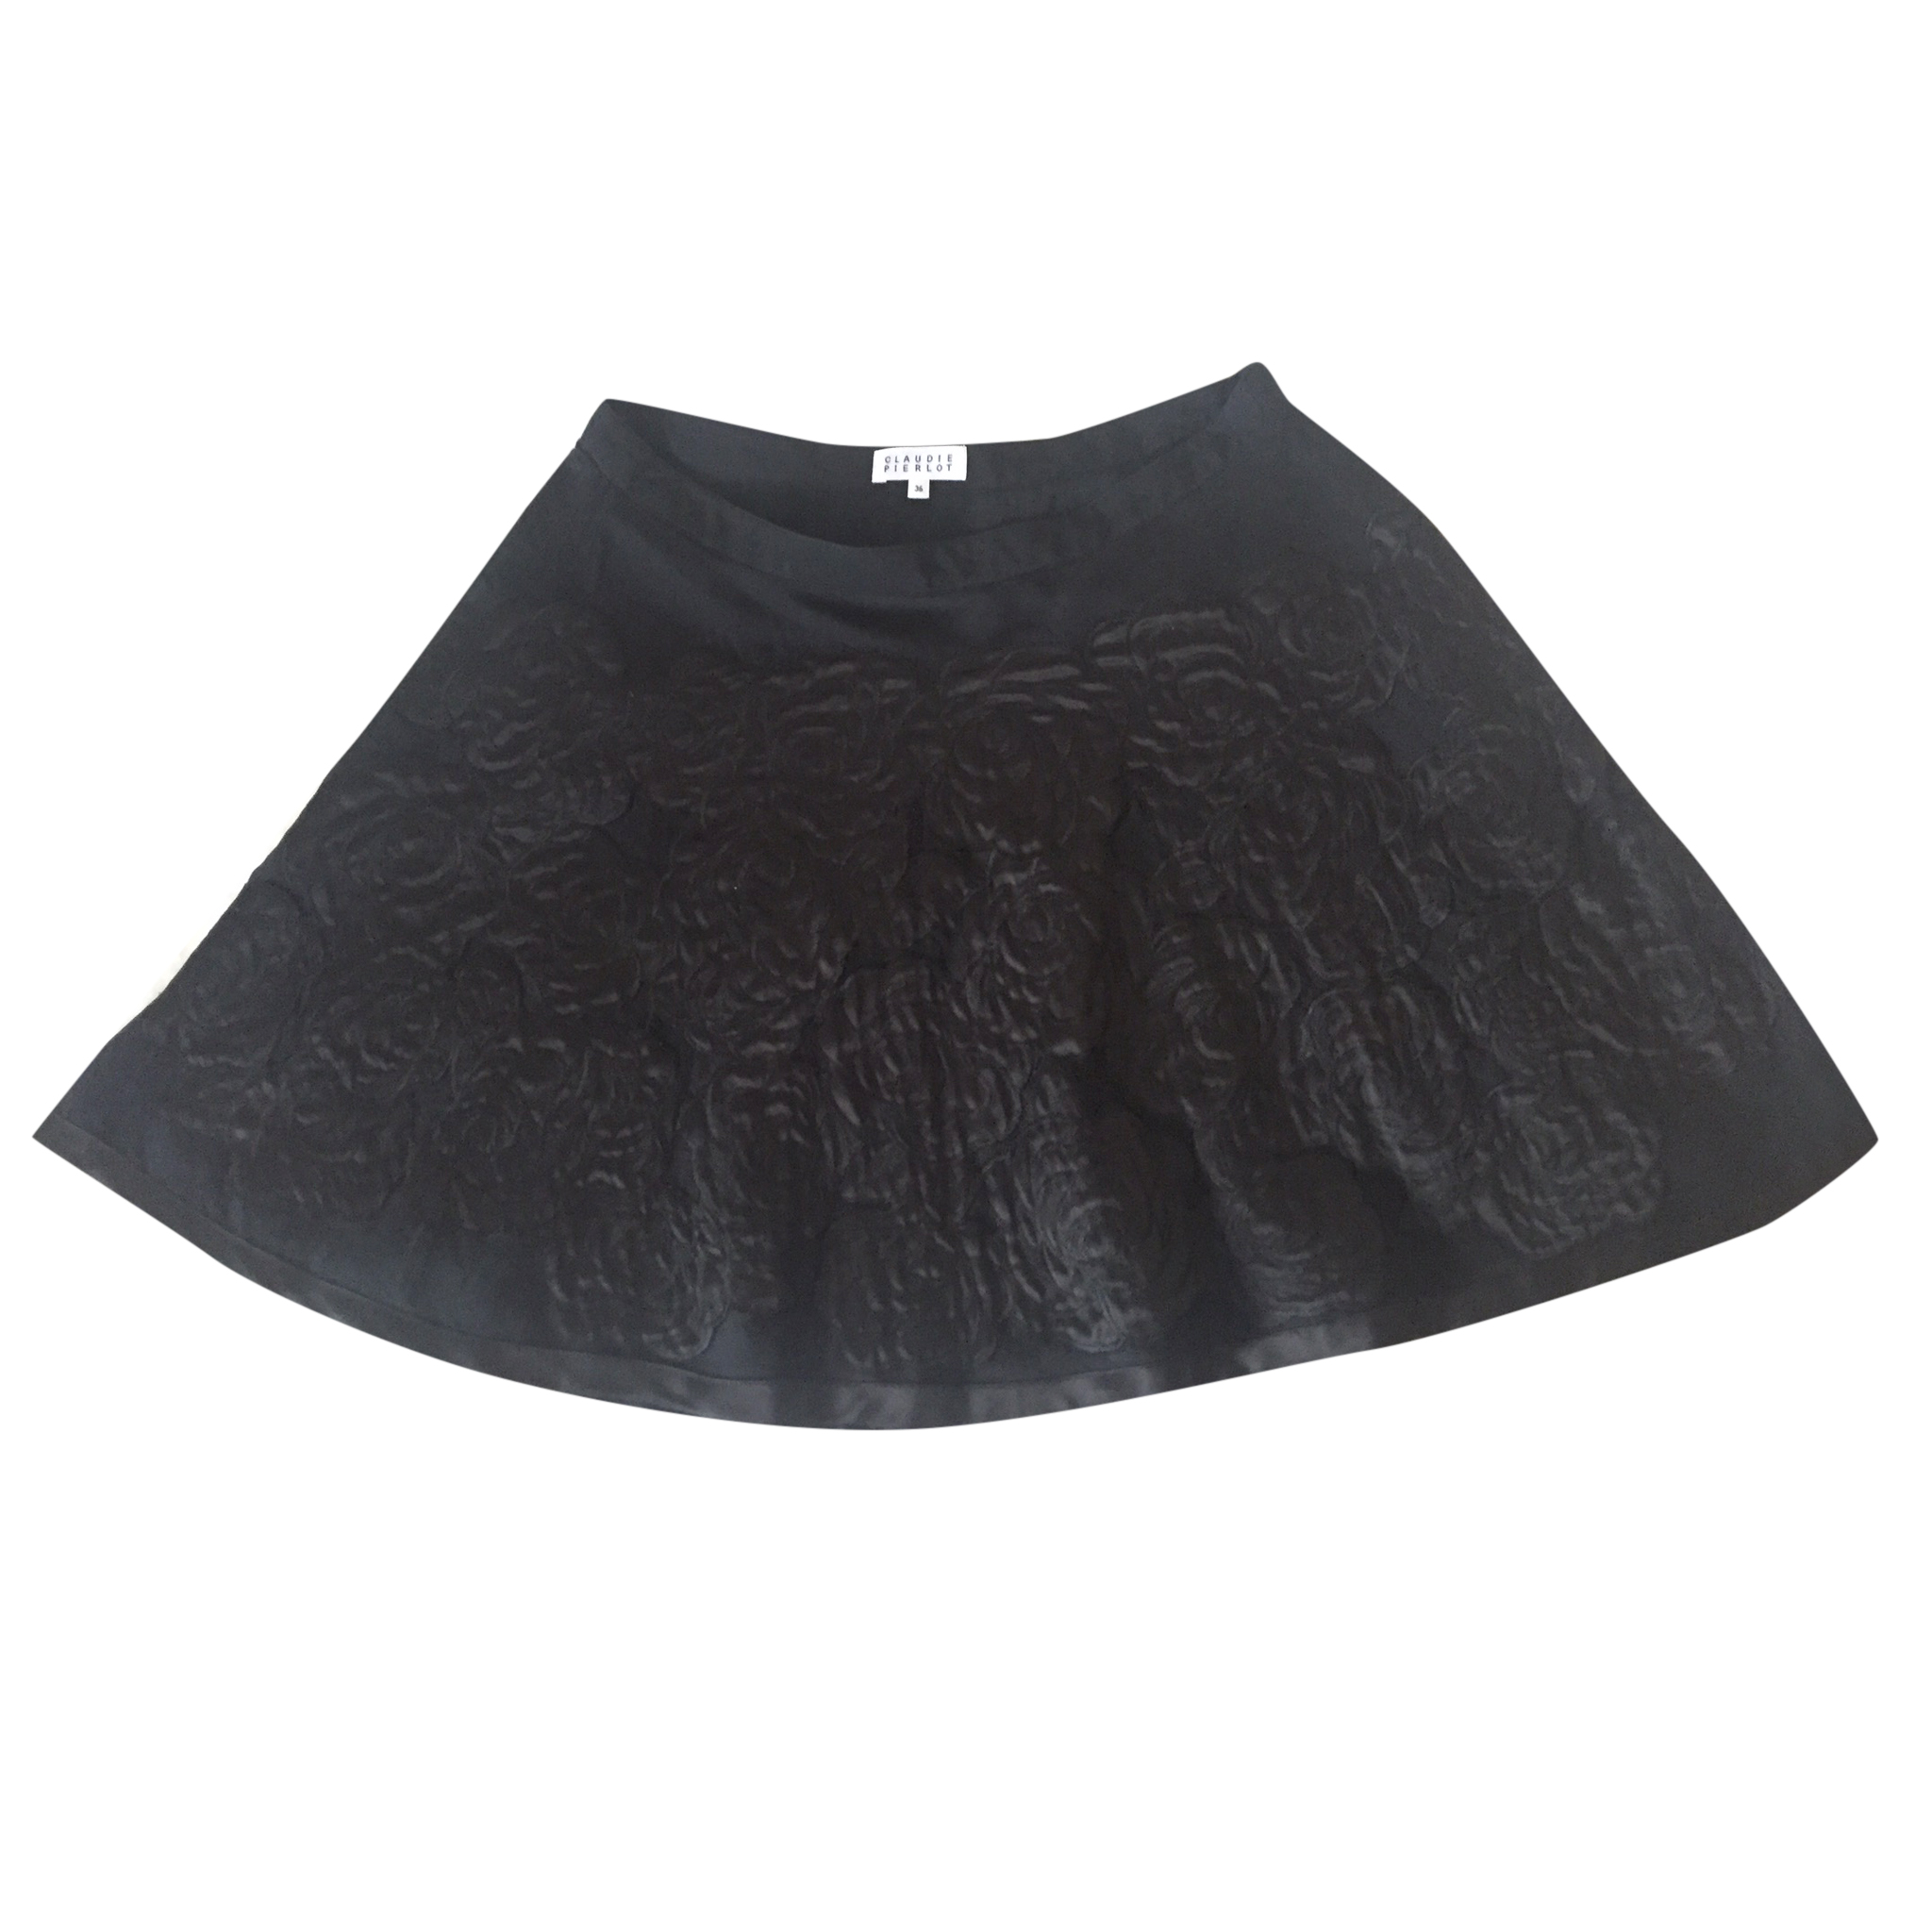 Claudie Pierlot Black Mini Skirt